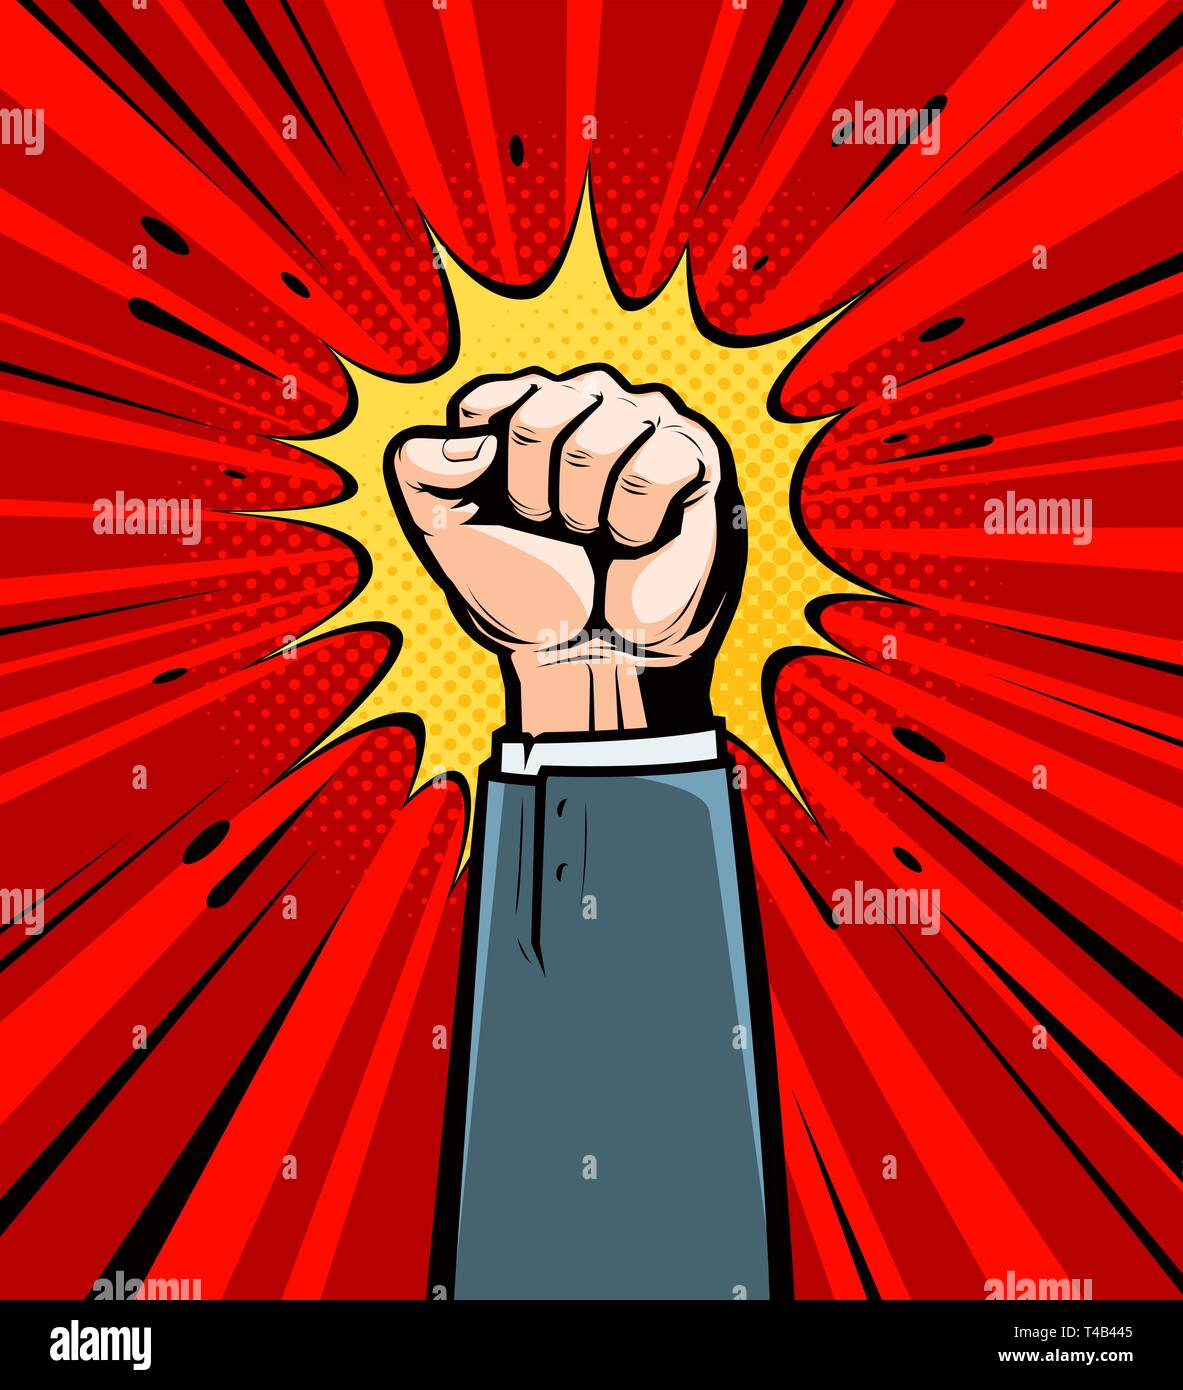 Clenched fist raised up. Cartoon in pop art retro comic style, vector illustration - Stock Vector